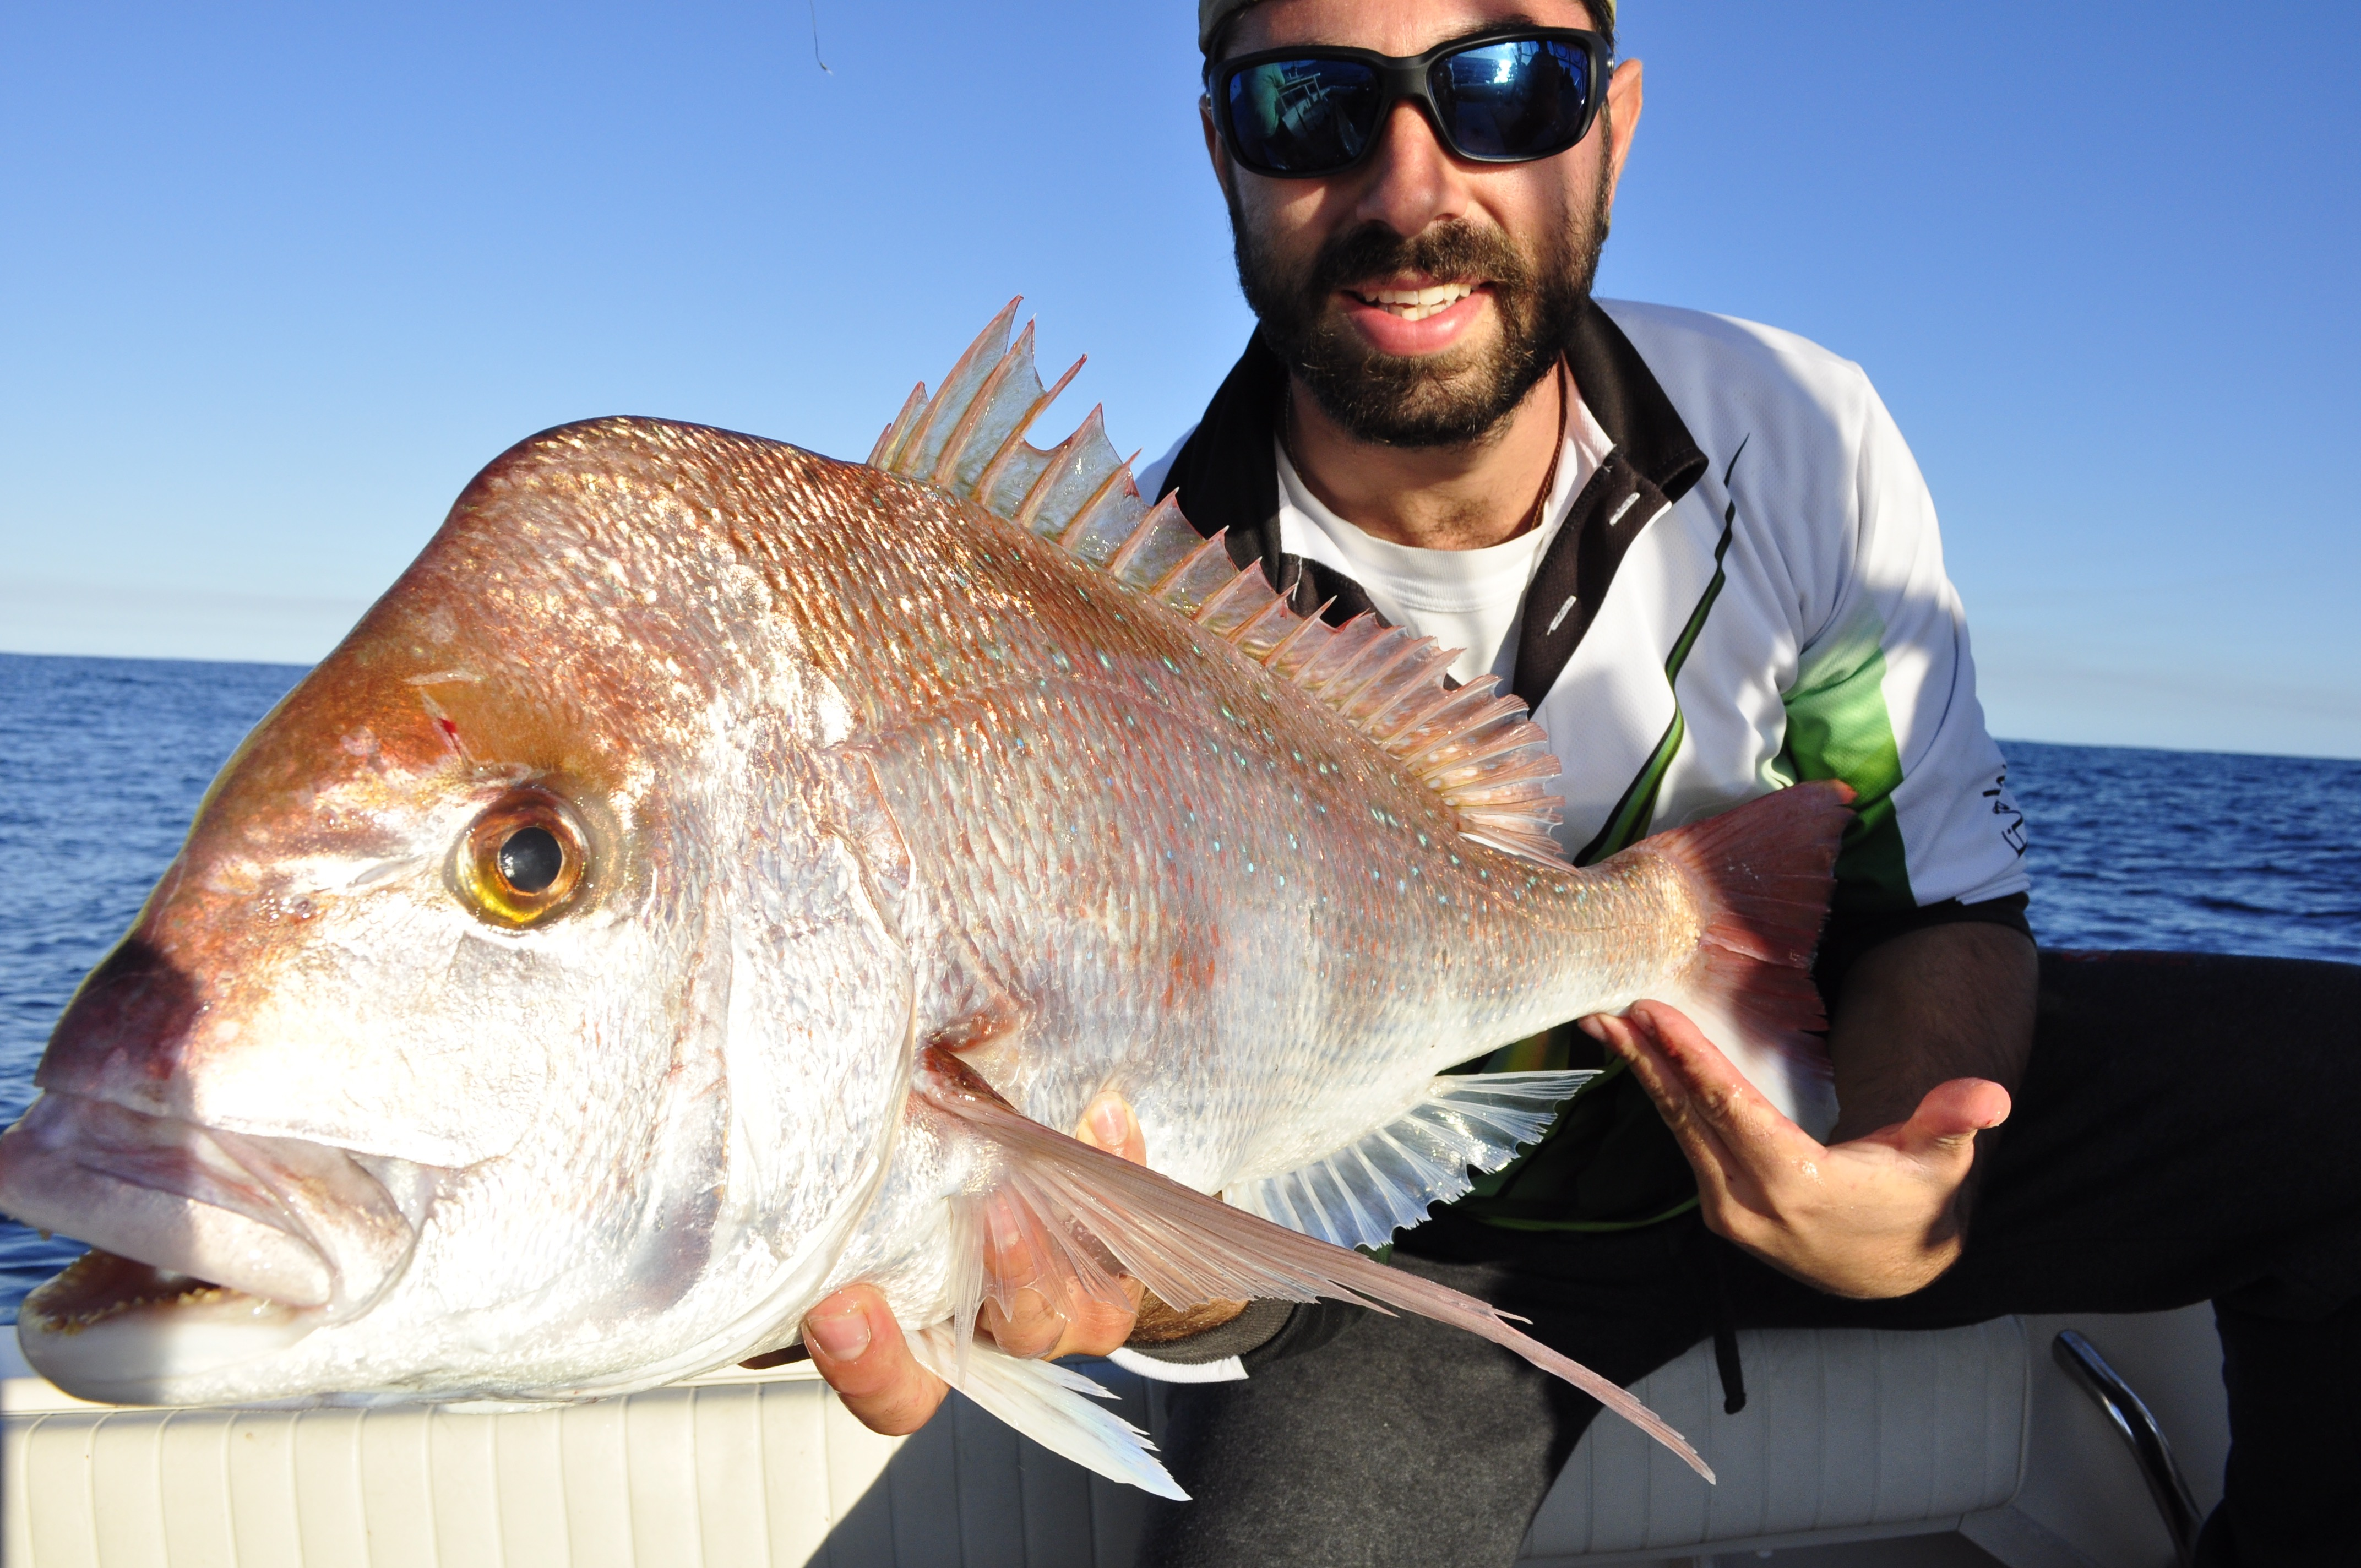 This snapper was boated by Peter about midday using the float line technique described in the article.